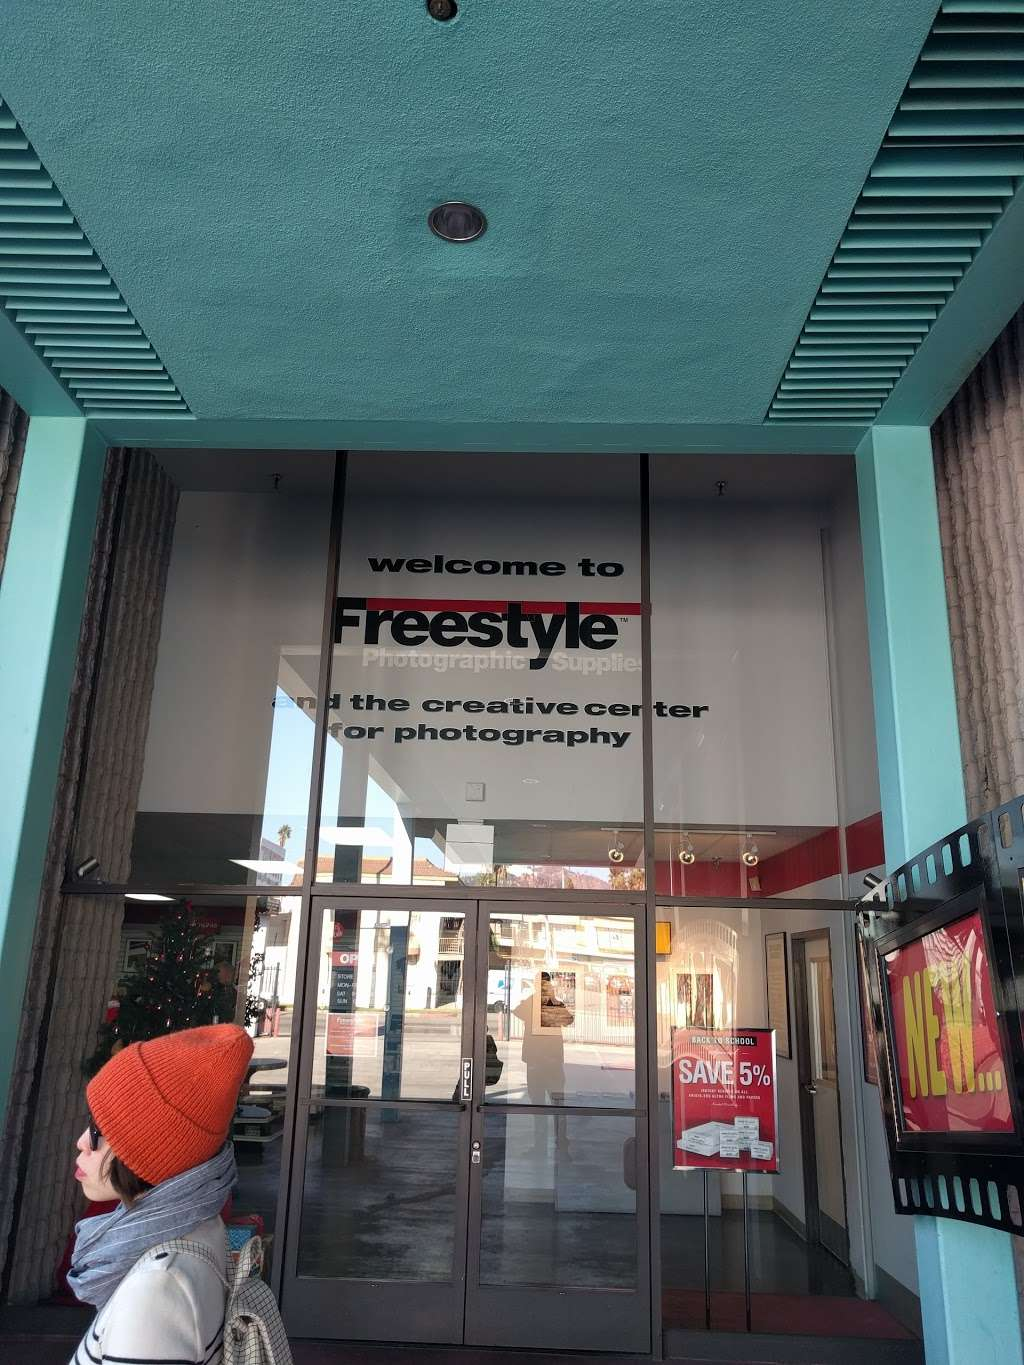 Freestyle Photographic Supplies - electronics store  | Photo 8 of 10 | Address: 5124 Sunset Blvd, Los Angeles, CA 90027, USA | Phone: (323) 660-3460